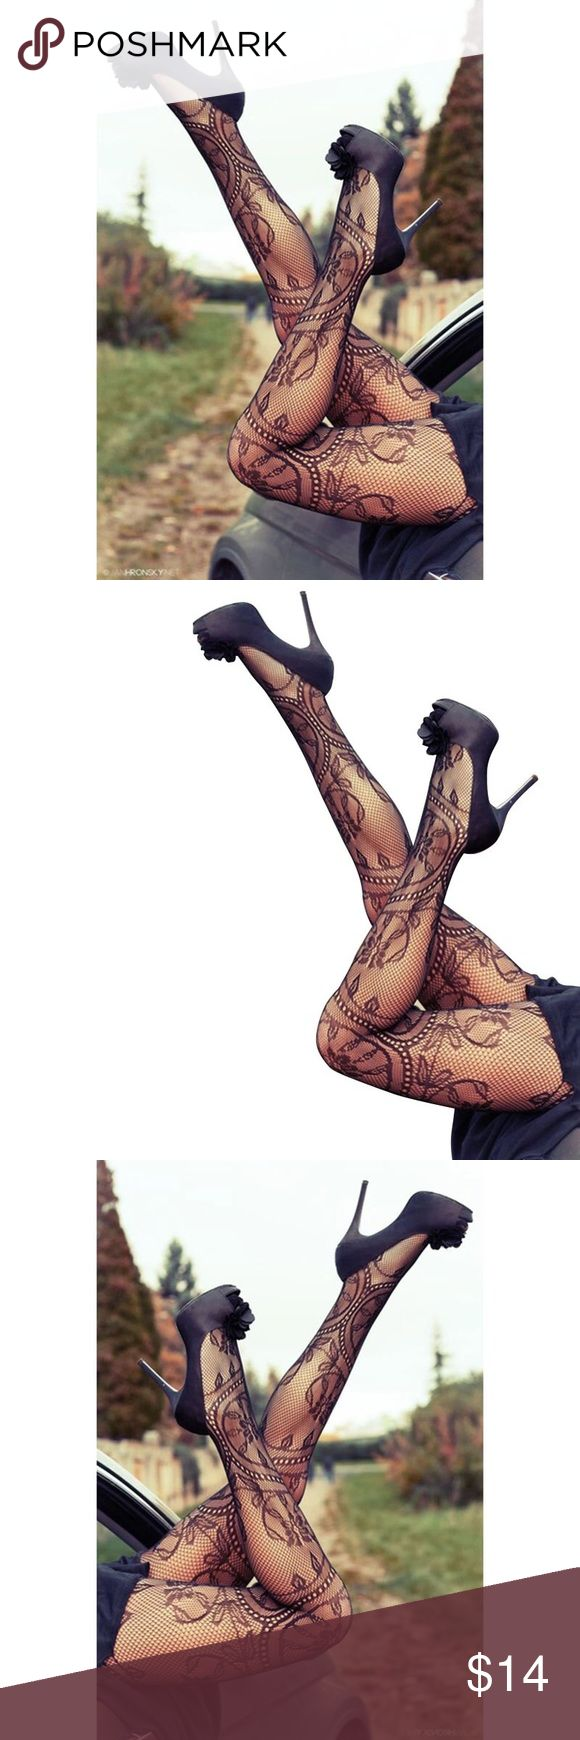 🛒Coming Soon Women's Tattoo Stockings Hot 2017 New Women sexy Silk stockings tattoo pantyhose Stockings Fancy Sexy Floral Pattern Fishnet Pantyhose Queen Esther Etc Accessories Hosiery & Socks